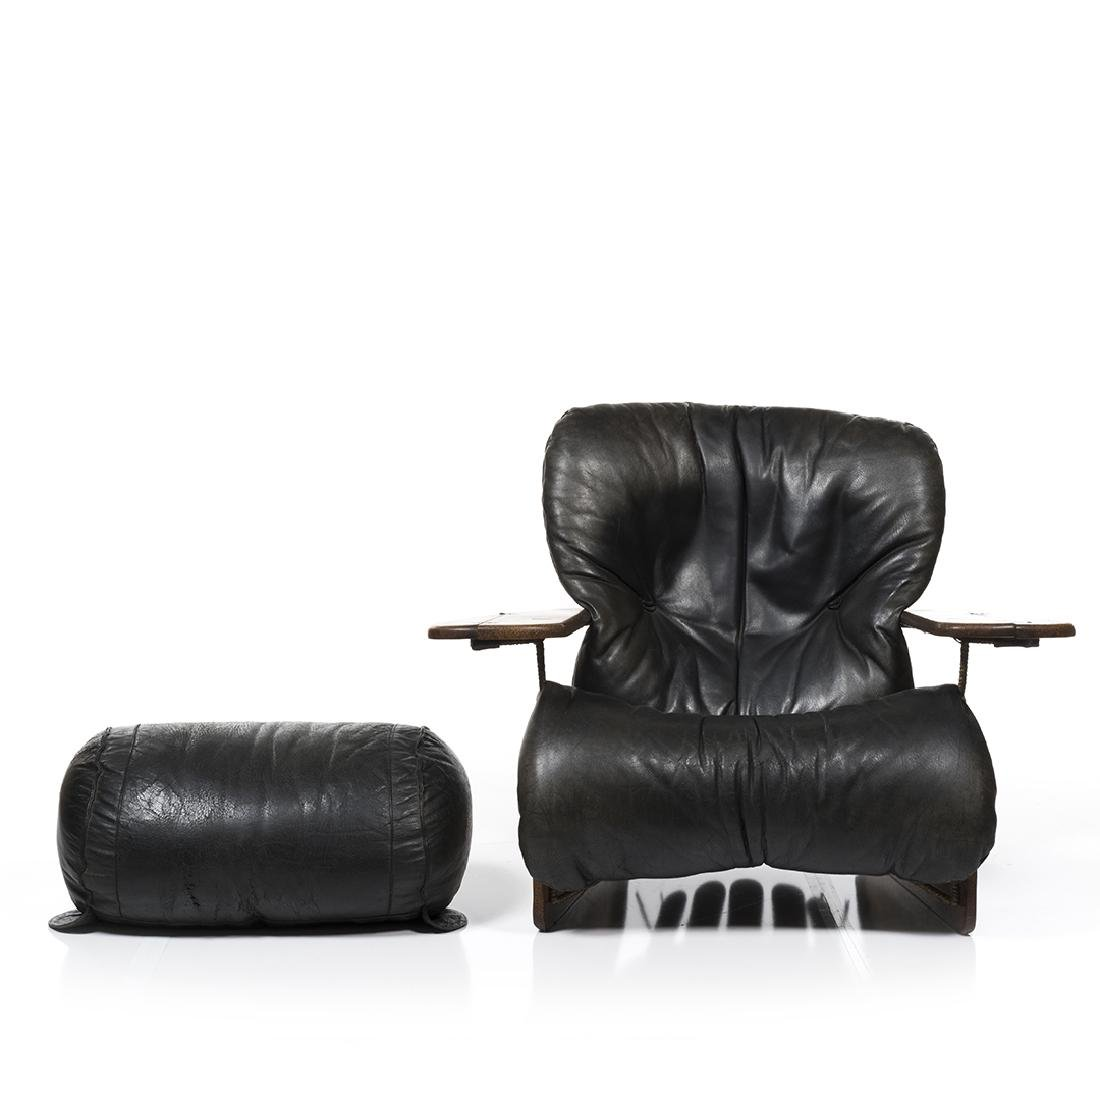 Pacific Green Lounge Chair and Ottoman - 3